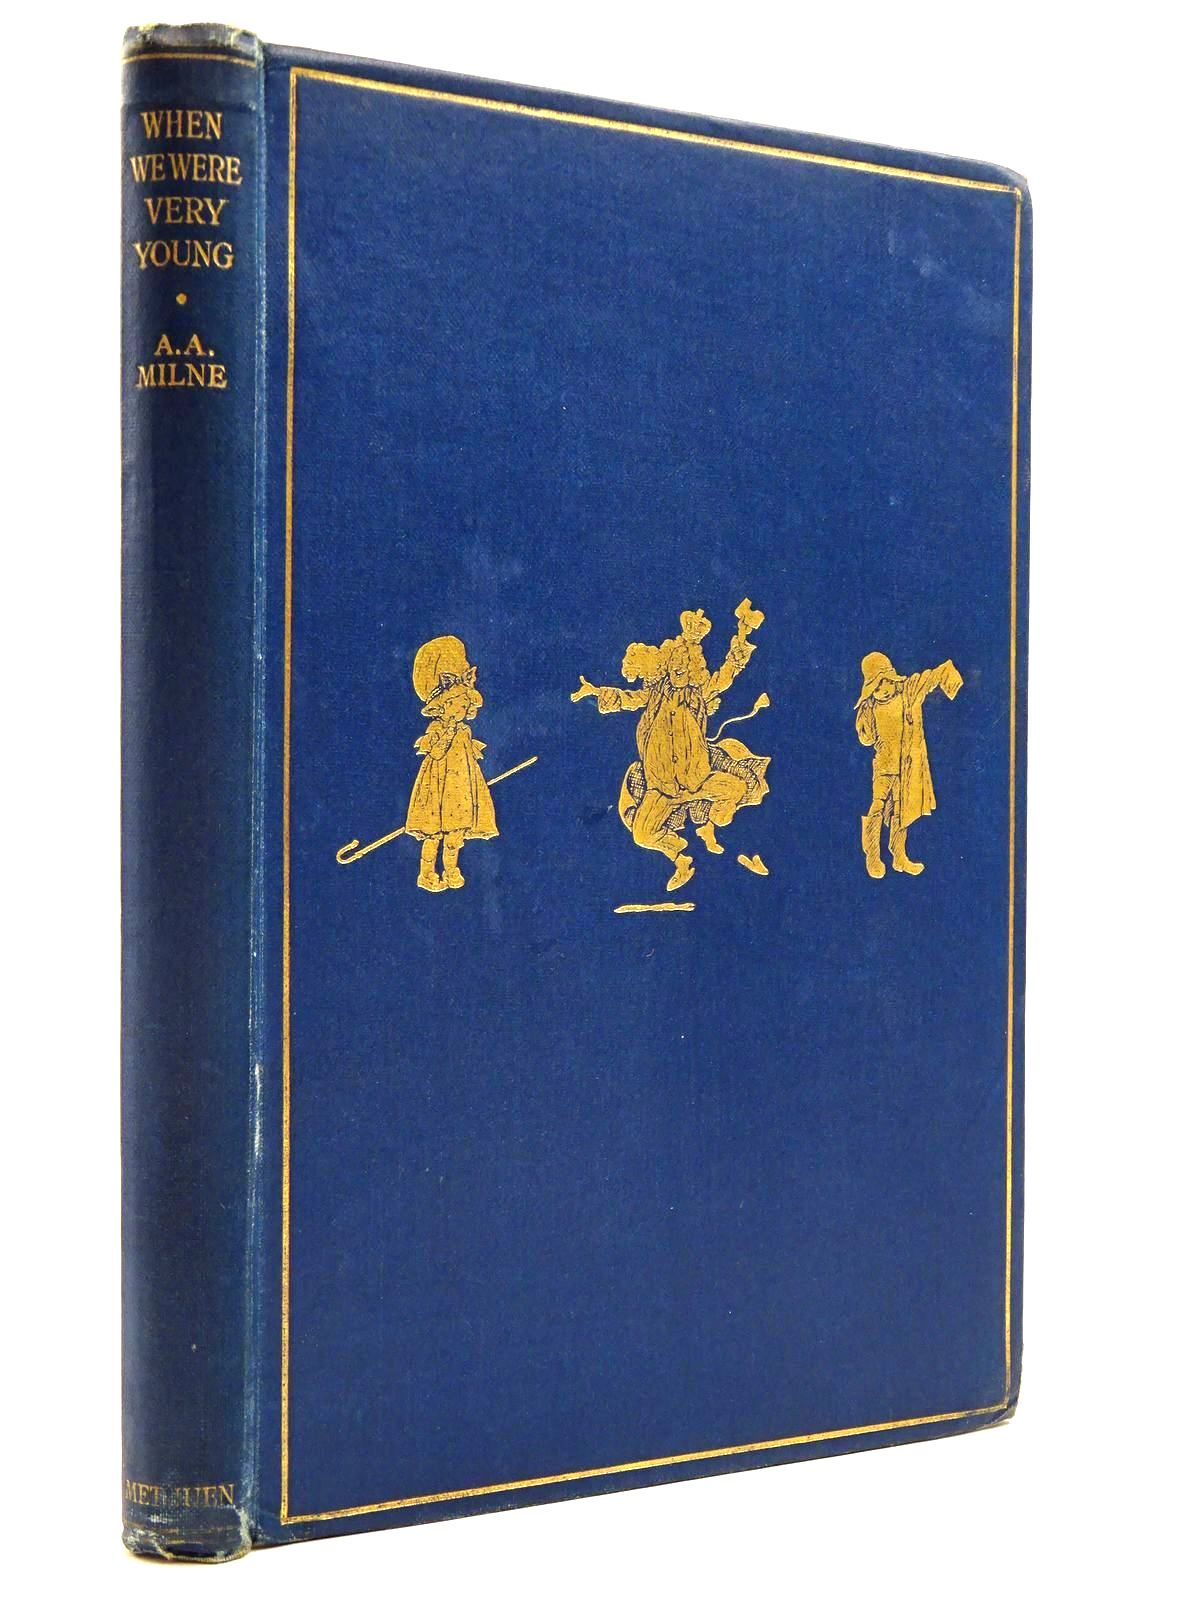 Photo of WHEN WE WERE VERY YOUNG written by Milne, A.A. illustrated by Shepard, E.H. published by Methuen & Co. Ltd. (STOCK CODE: 2131109)  for sale by Stella & Rose's Books